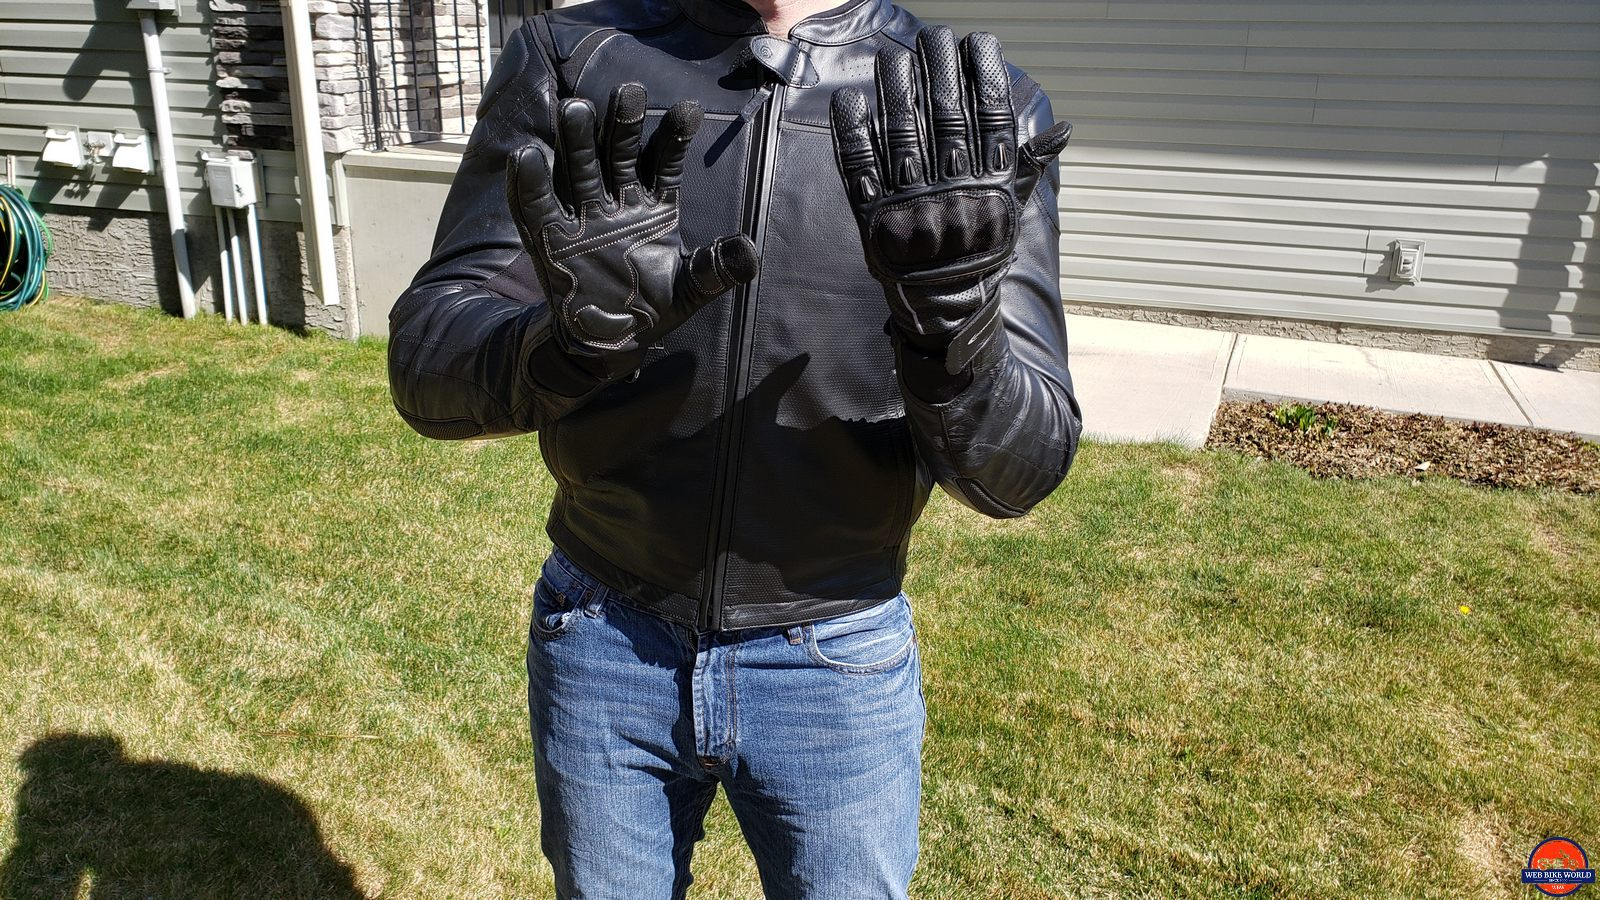 wearing the motonation campeon gloves